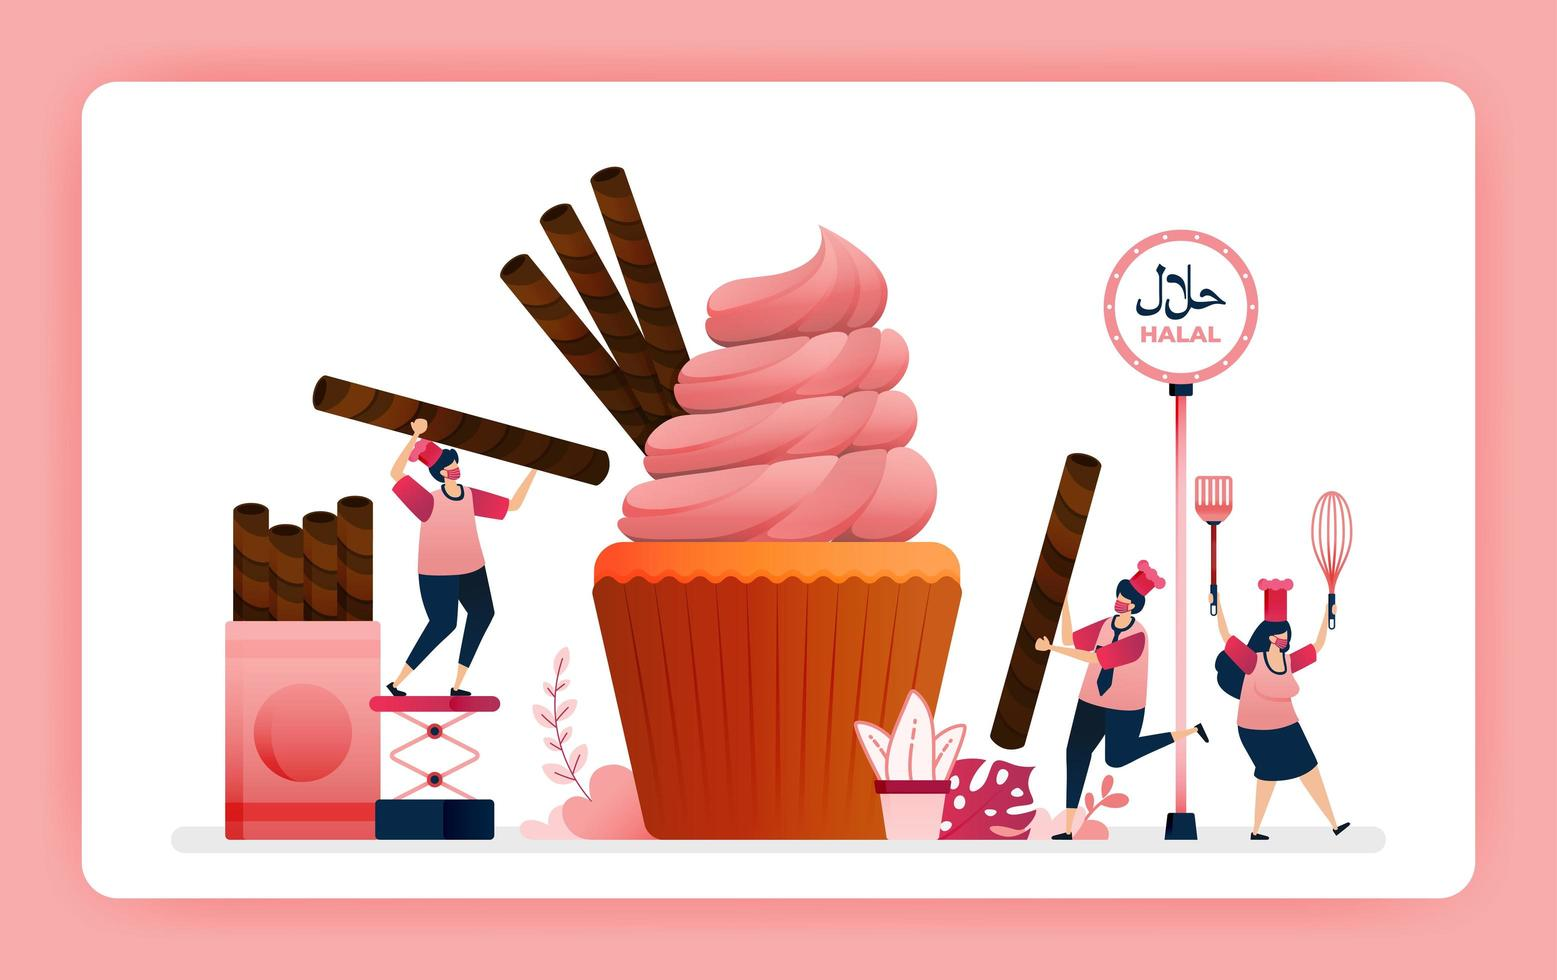 halal food menu illustration of sweet strawberry cupcake. Cook chocolate wafer snacks for muffin topping. Design can use For website, web, landing page, banner, mobile apps, UI UX, poster, flyer vector